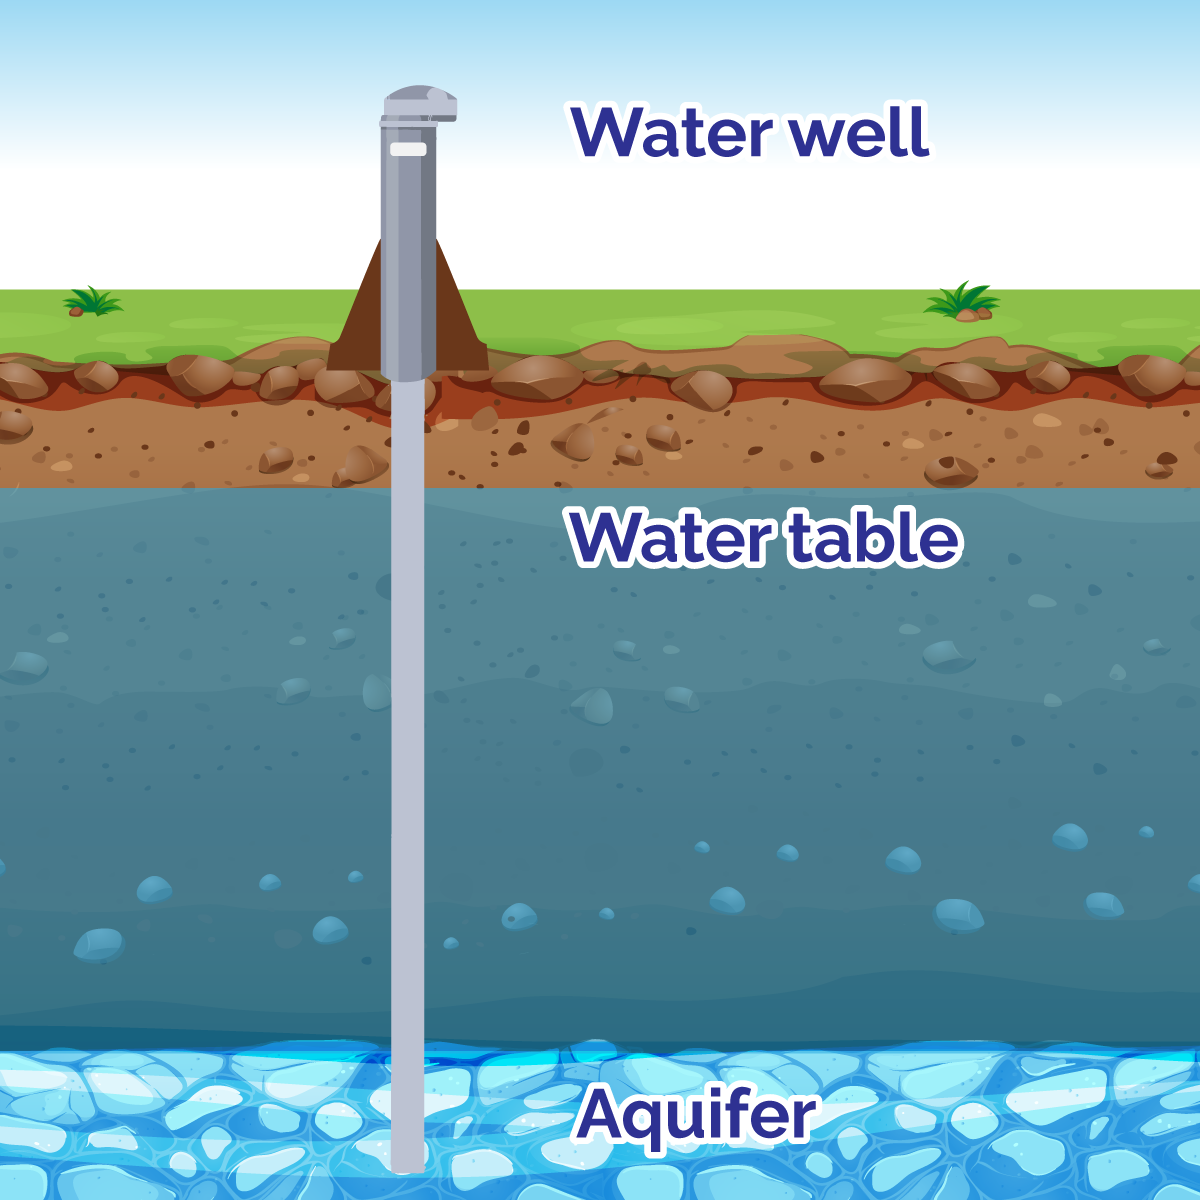 Graphic showing how groundwater is found beneath the earth's surface.